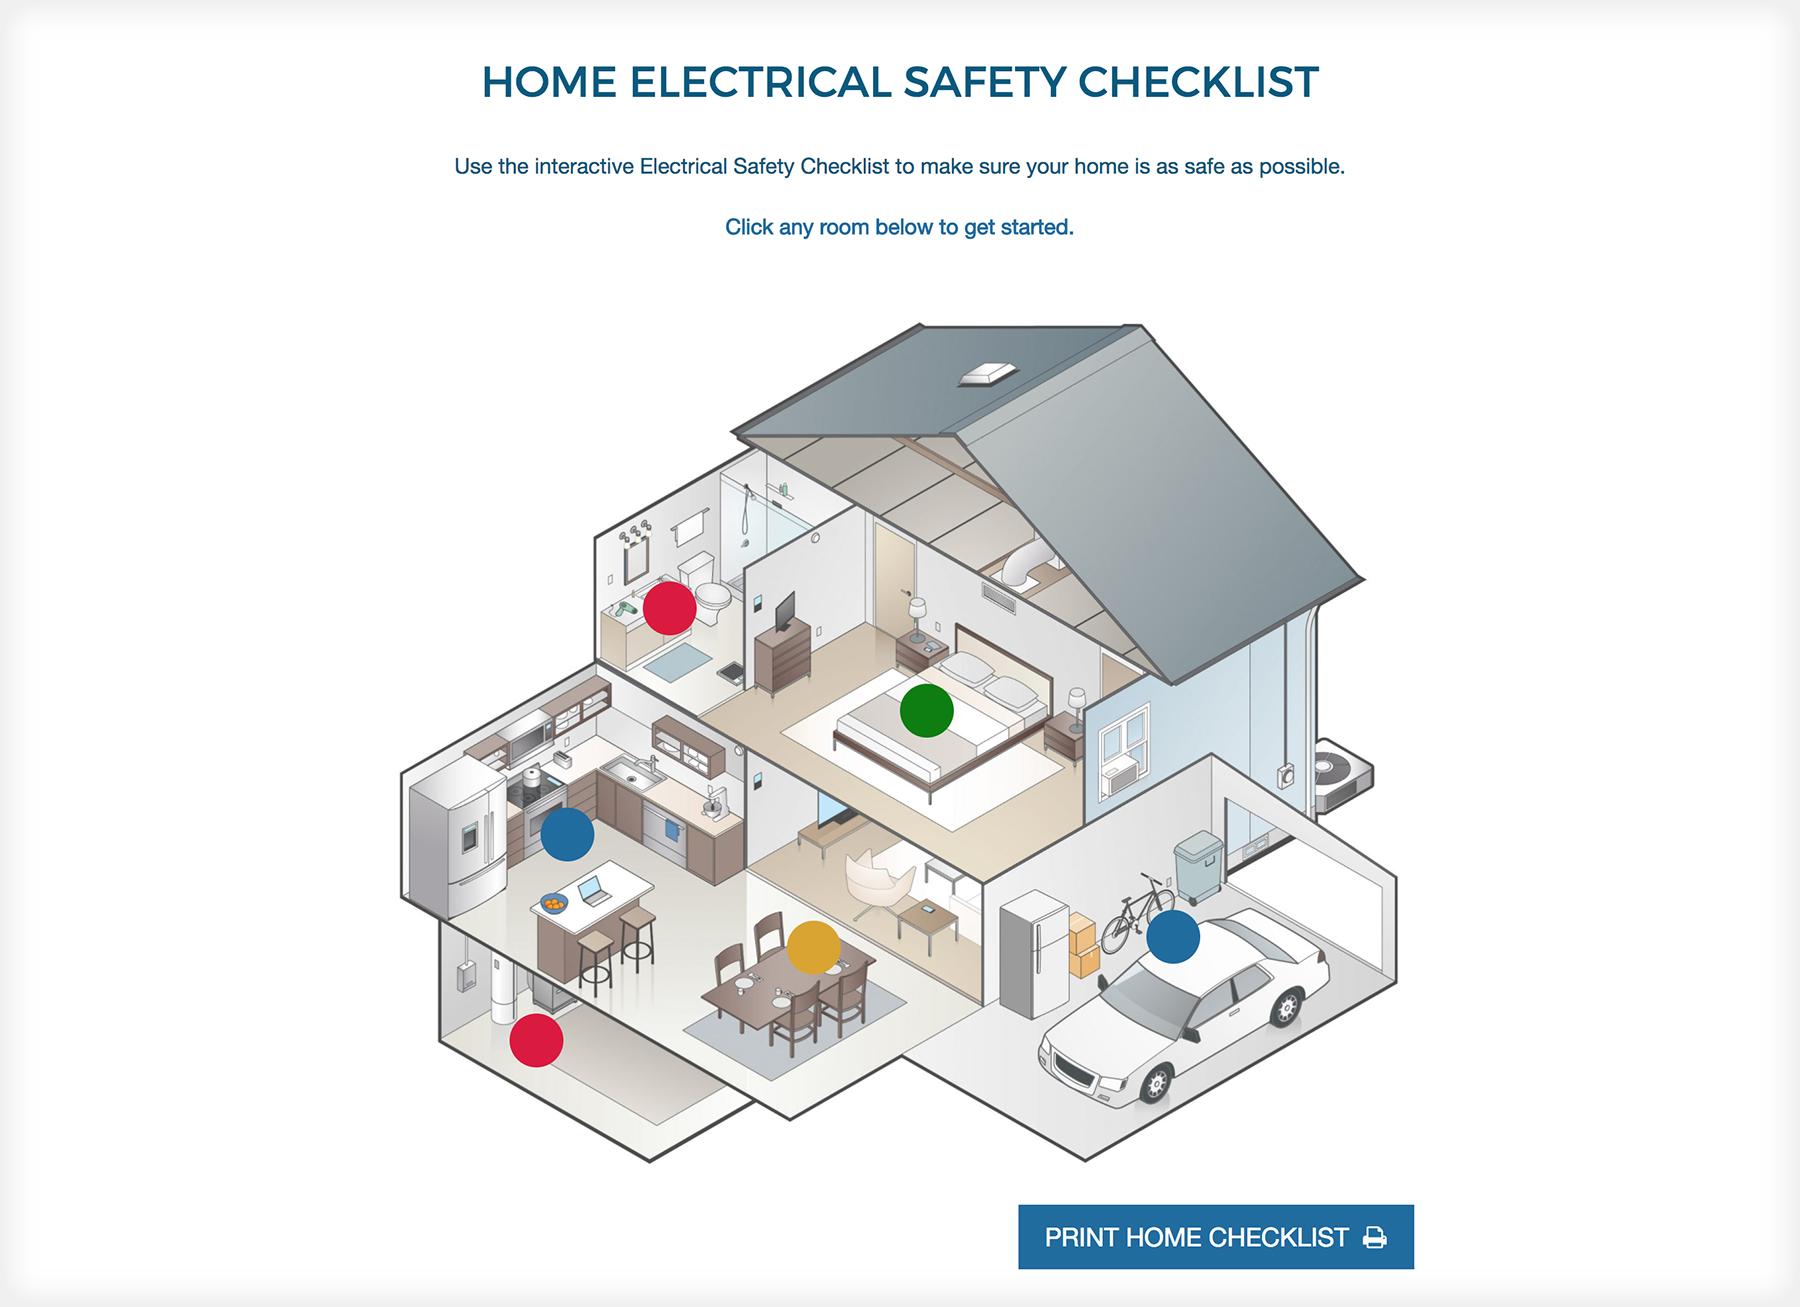 HomeSafety-1.jpg